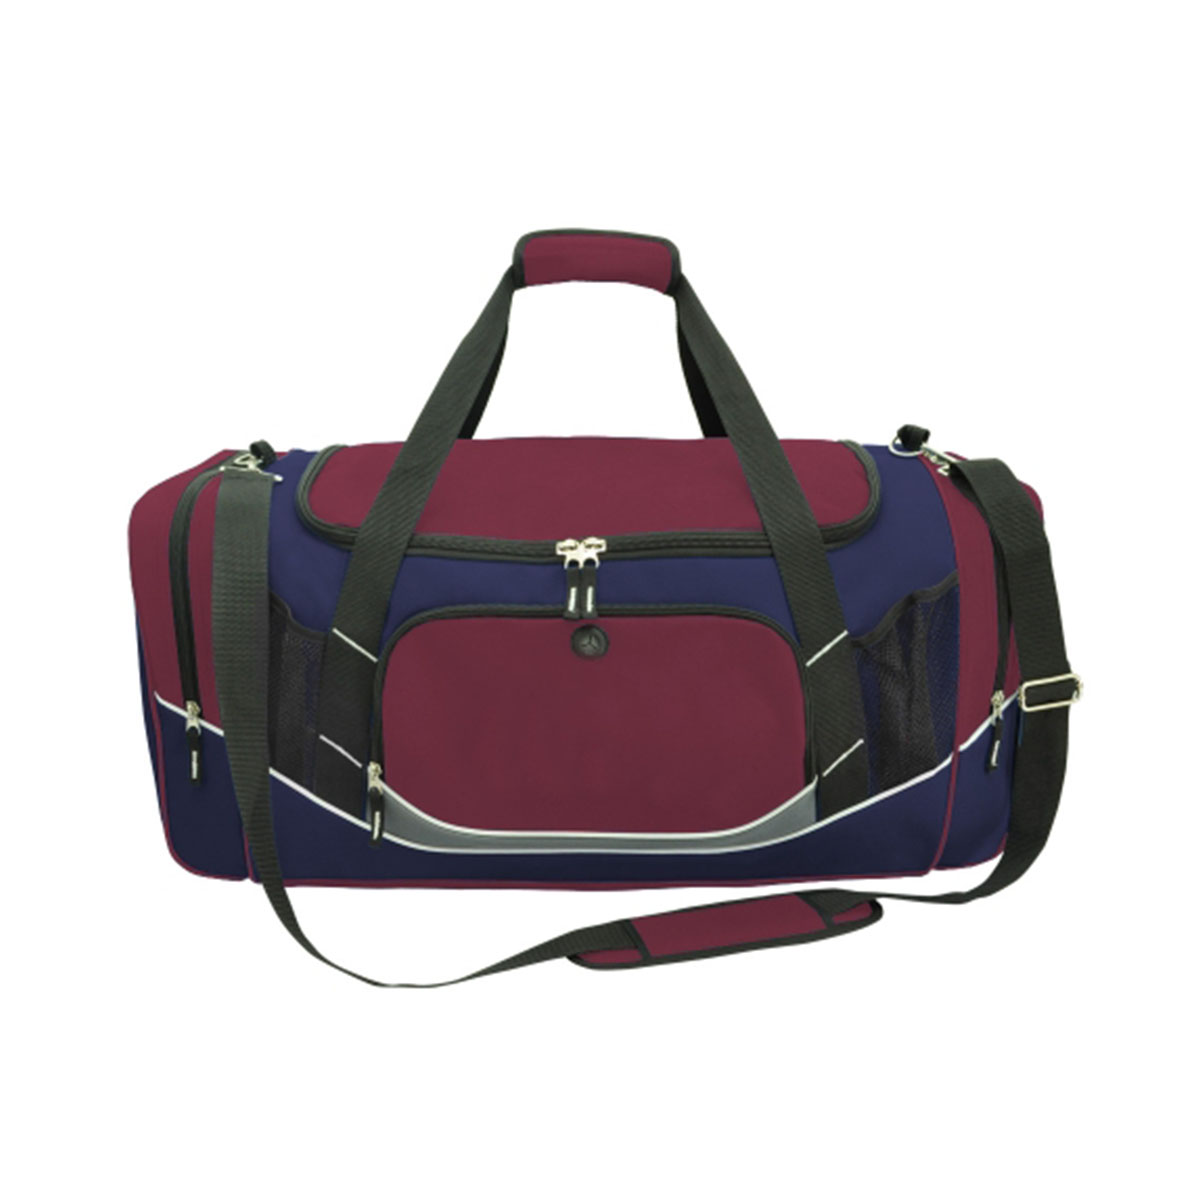 Atlantis Sports Bag-Maroon / Navy / White / Charcoal